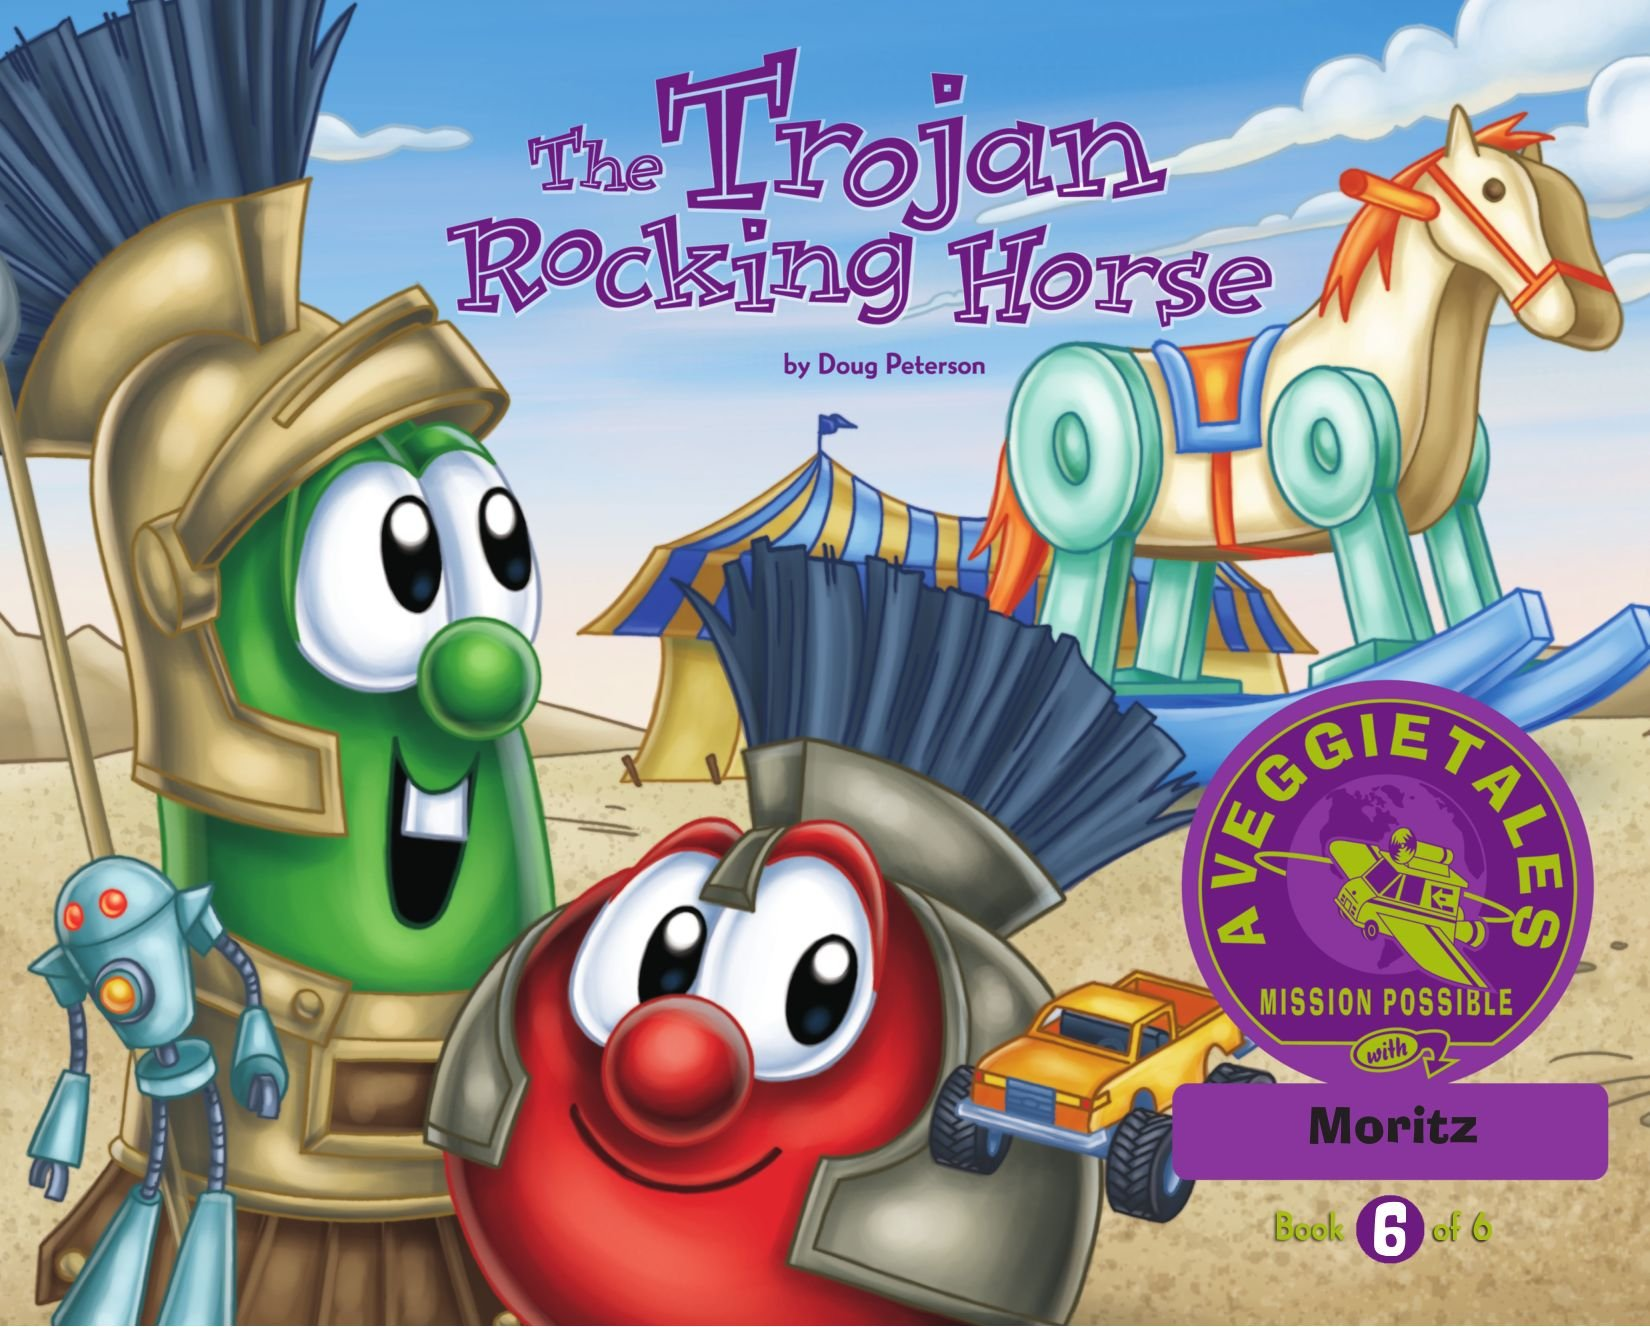 Download The Trojan Rocking Horse - VeggieTales Mission Possible Adventure Series #6: Personalized for Moritz (Boy) pdf